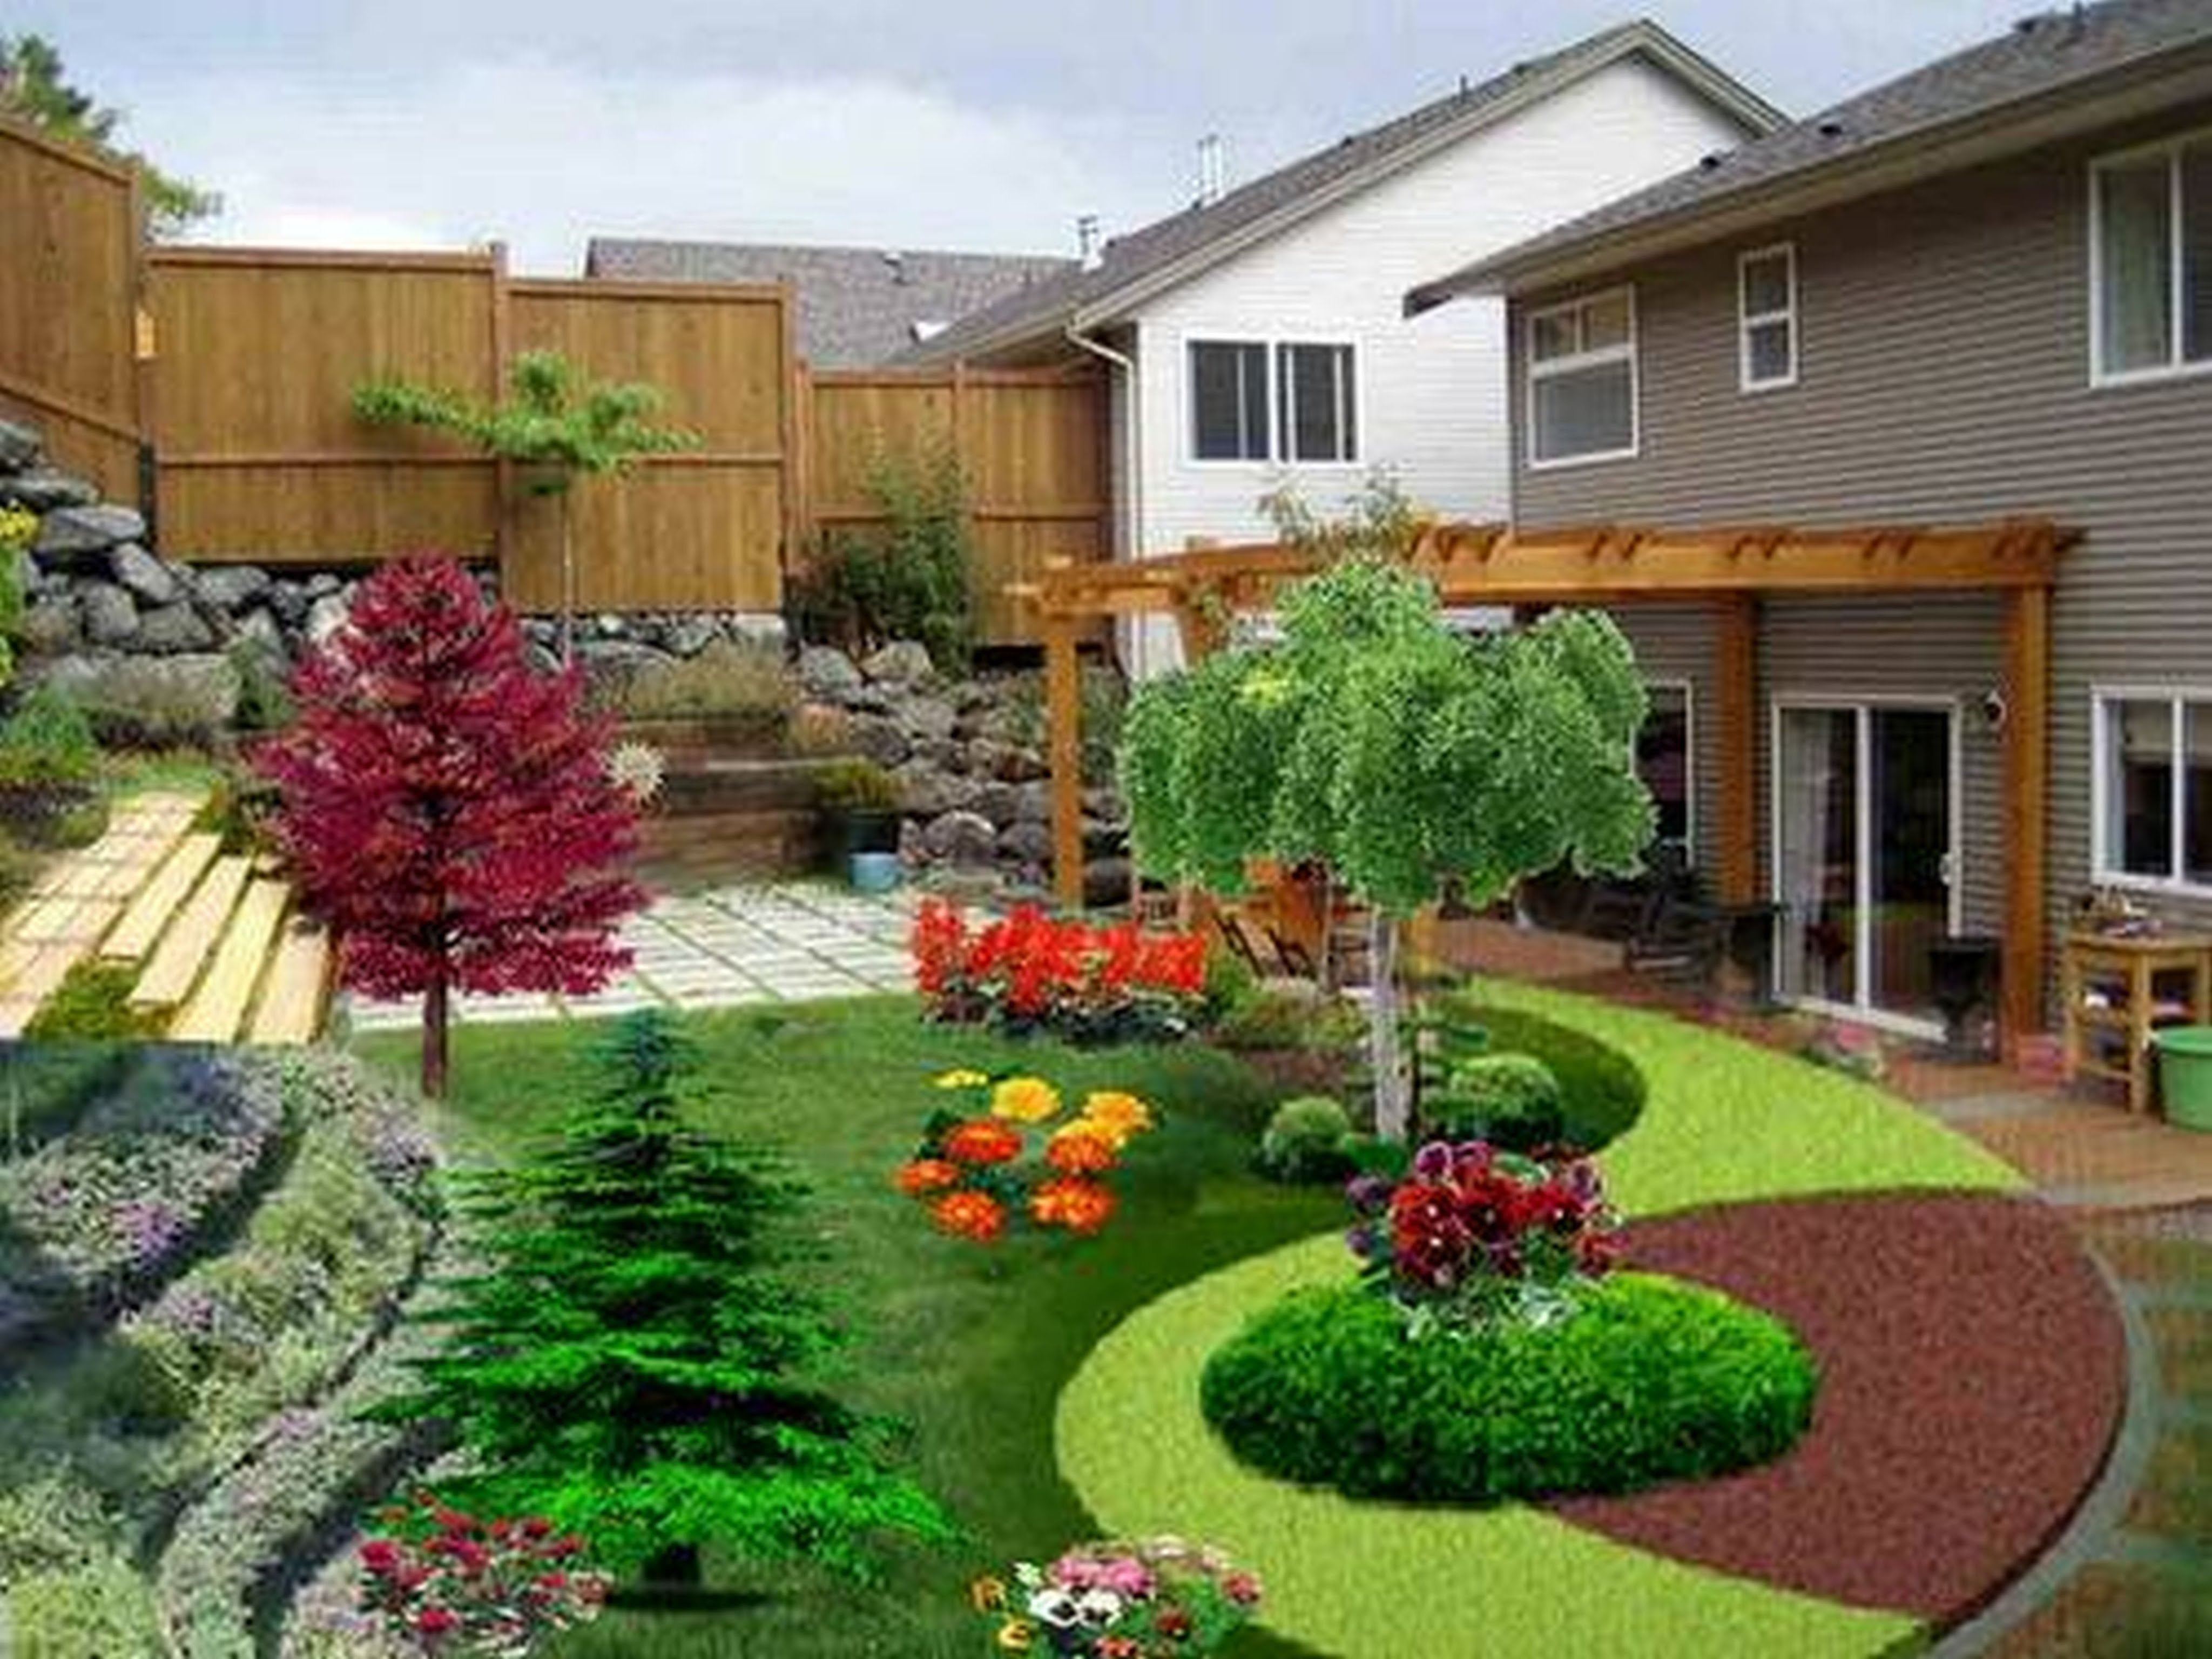 10 Fashionable Landscape Ideas Front Of House front garden ideas for front of house nice tips for front yard 1